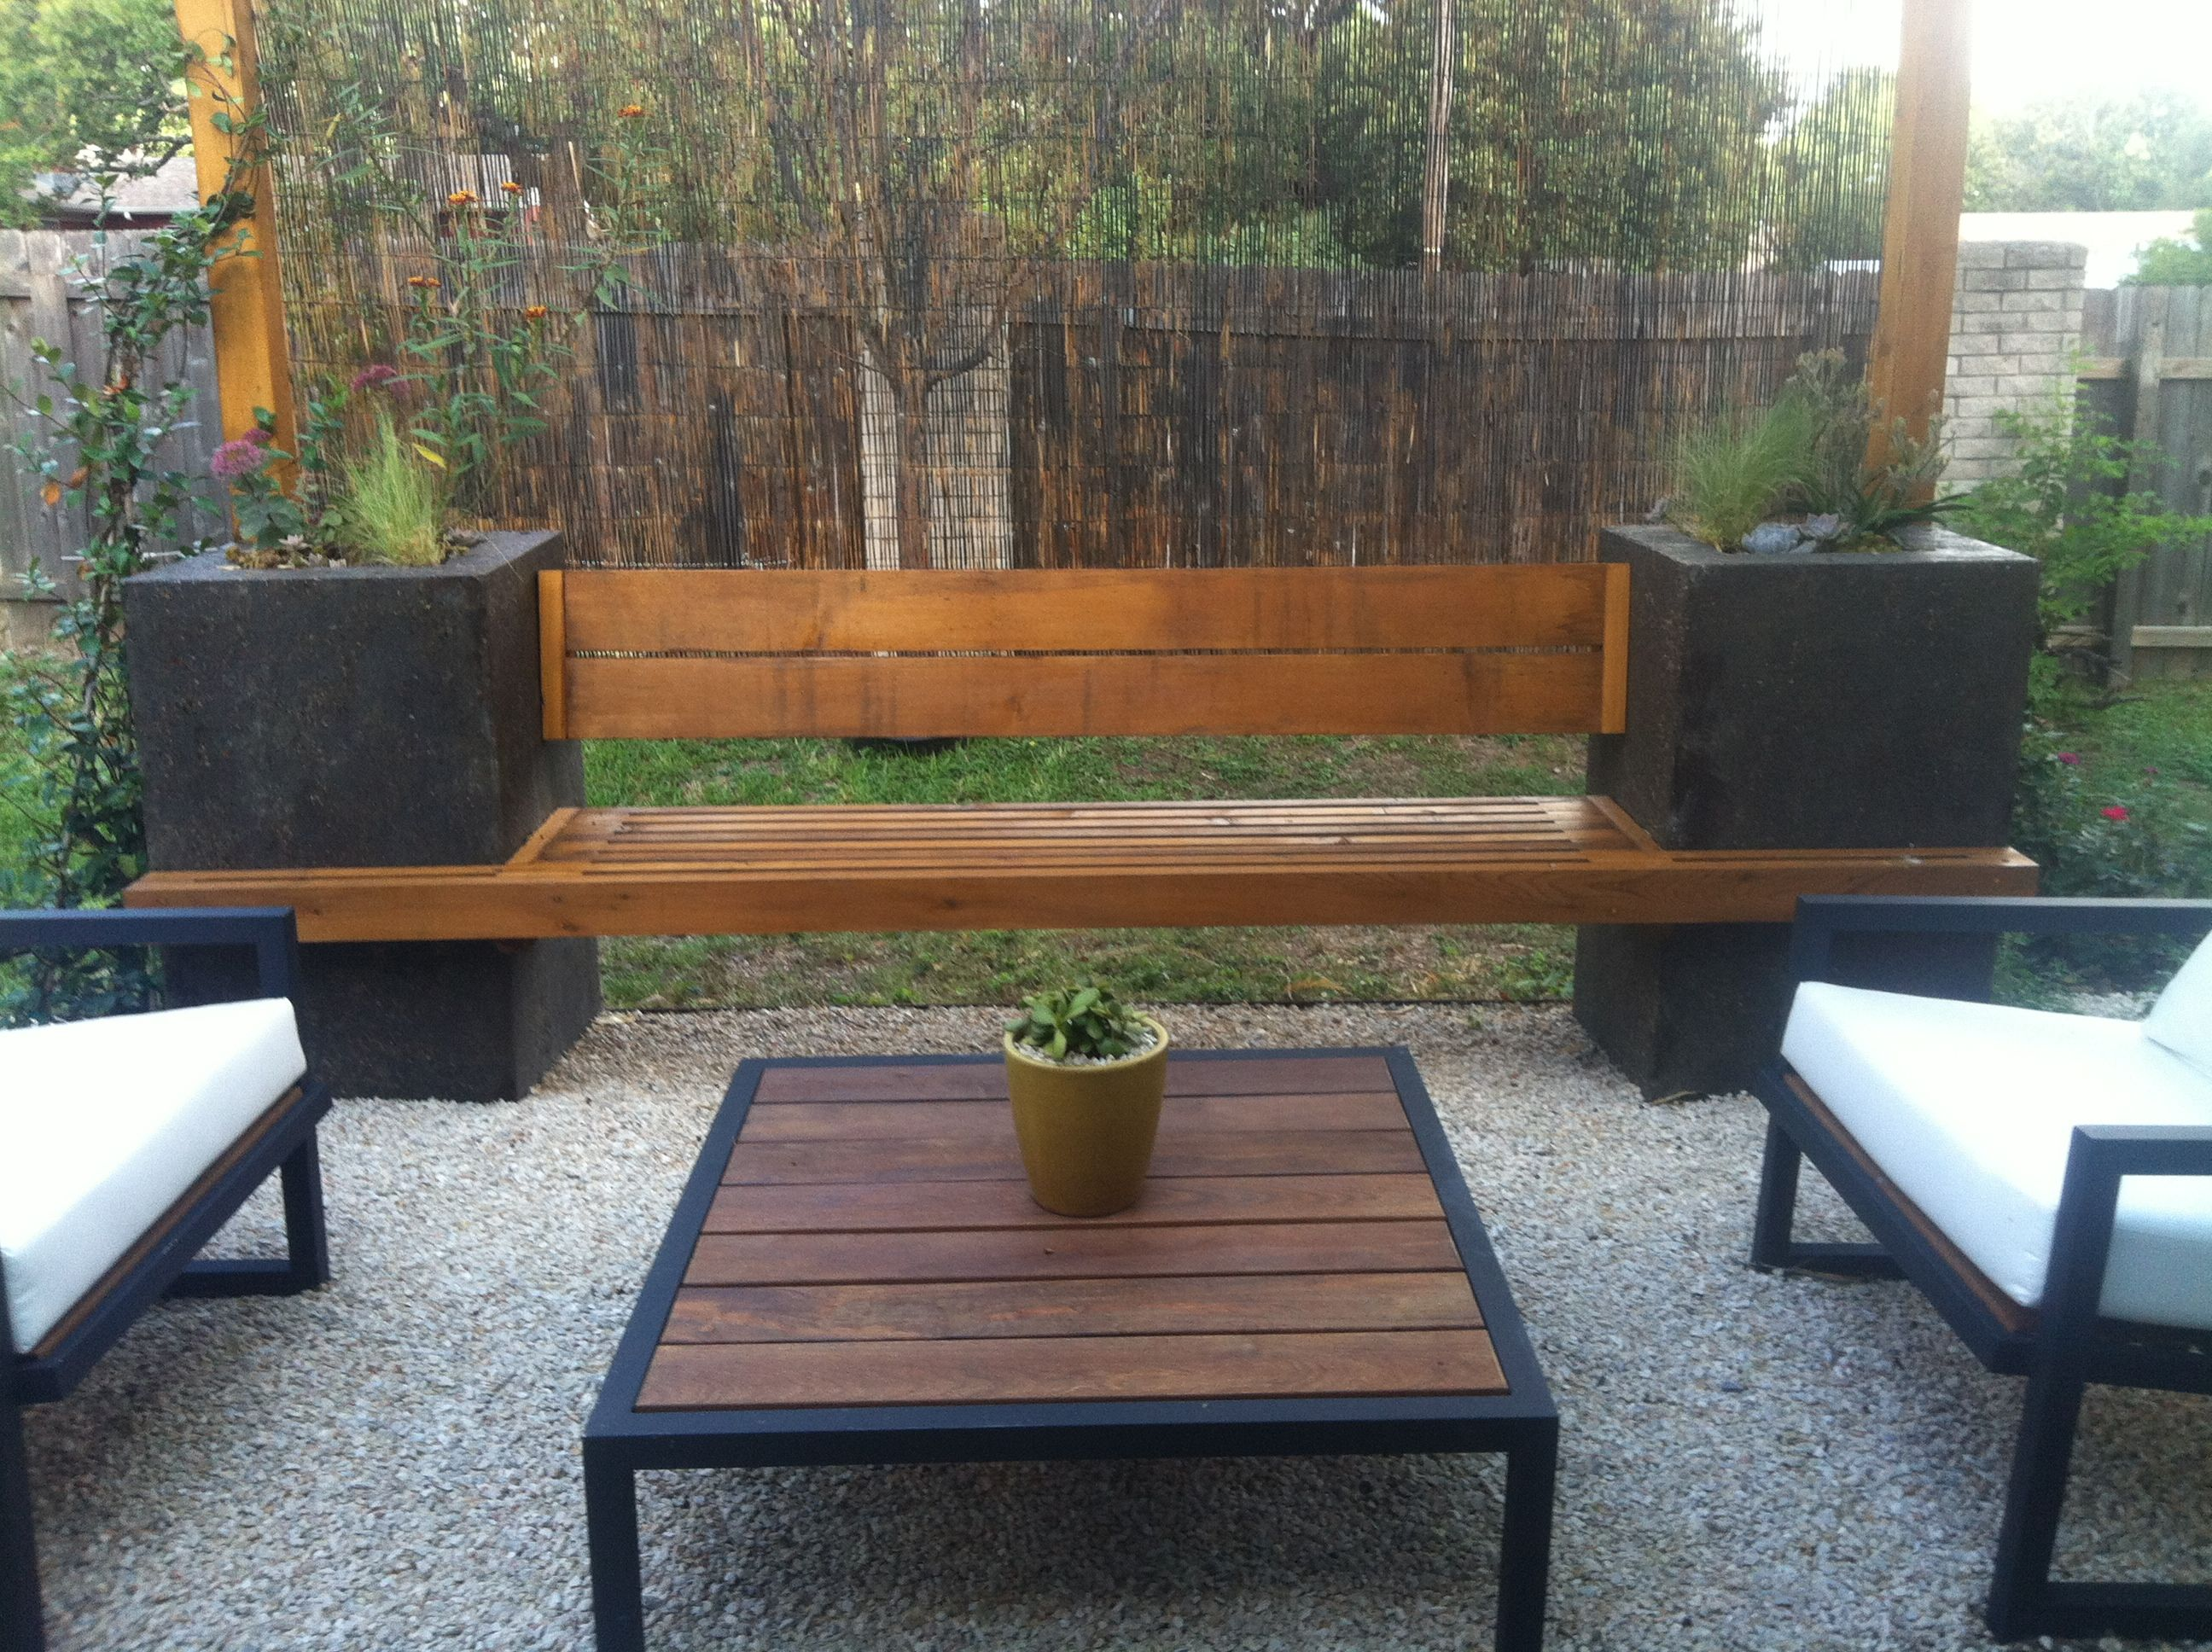 Concrete Patio Ideas with Benches